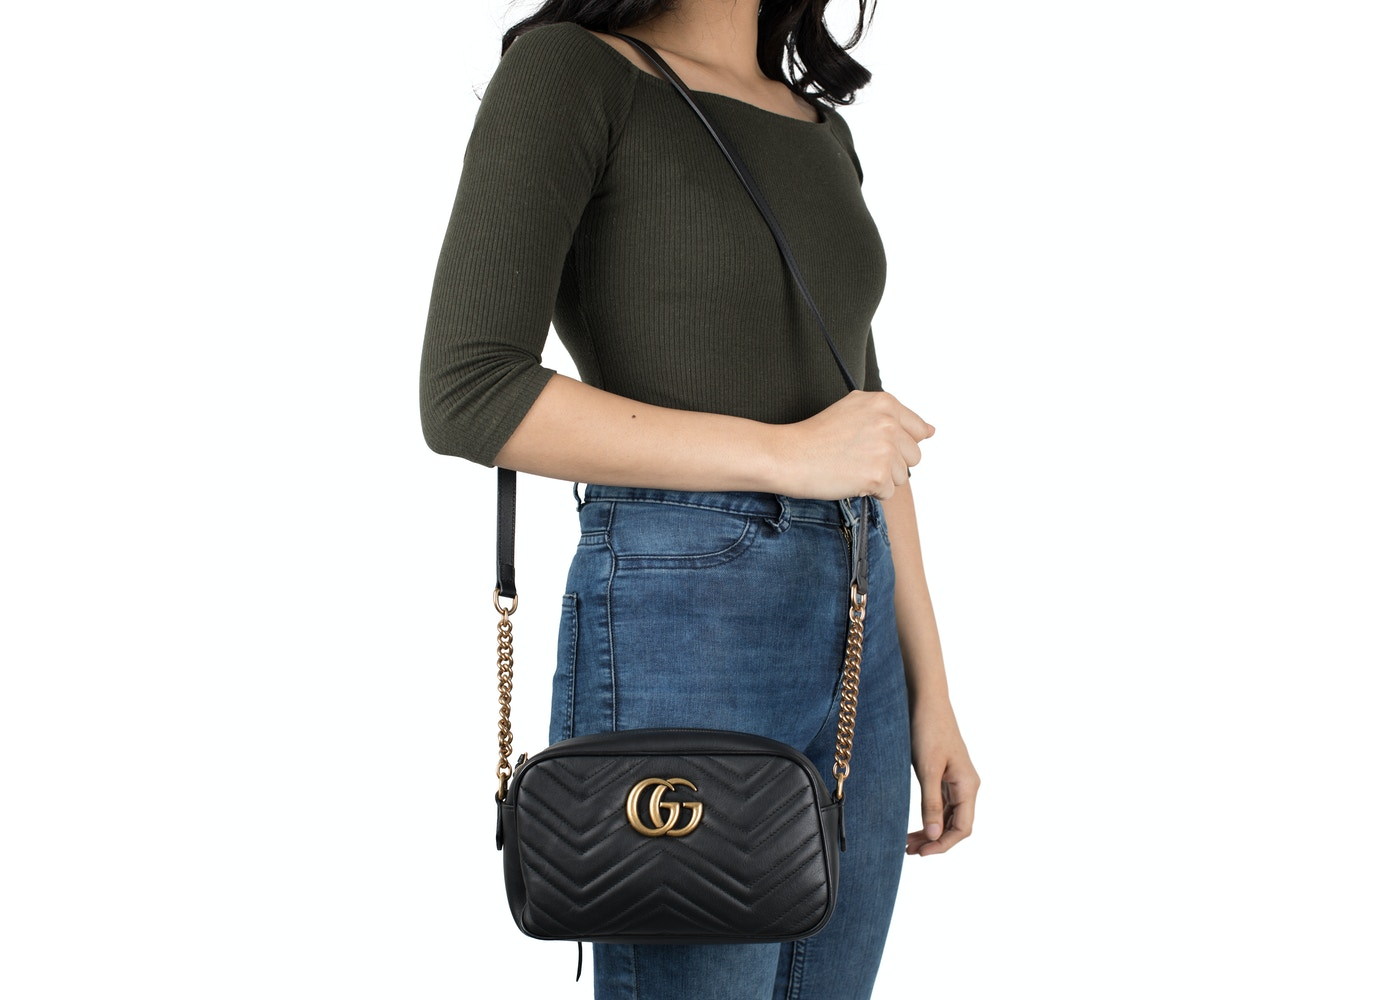 Gucci Gg Marmont Camera Bag Matelasse Small Black